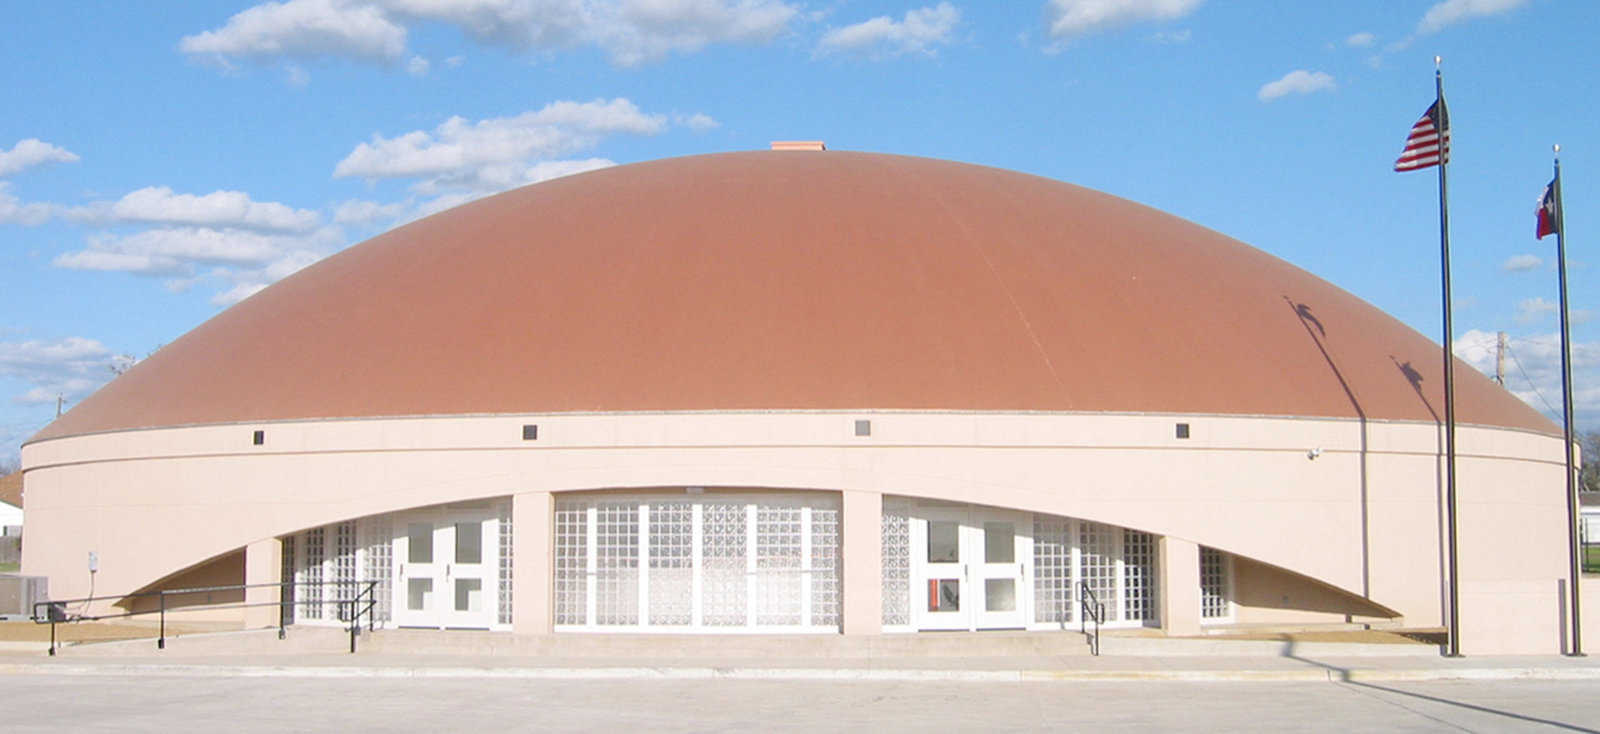 Avalon Isd Multipurpose Center Avalon Texas Monolithic